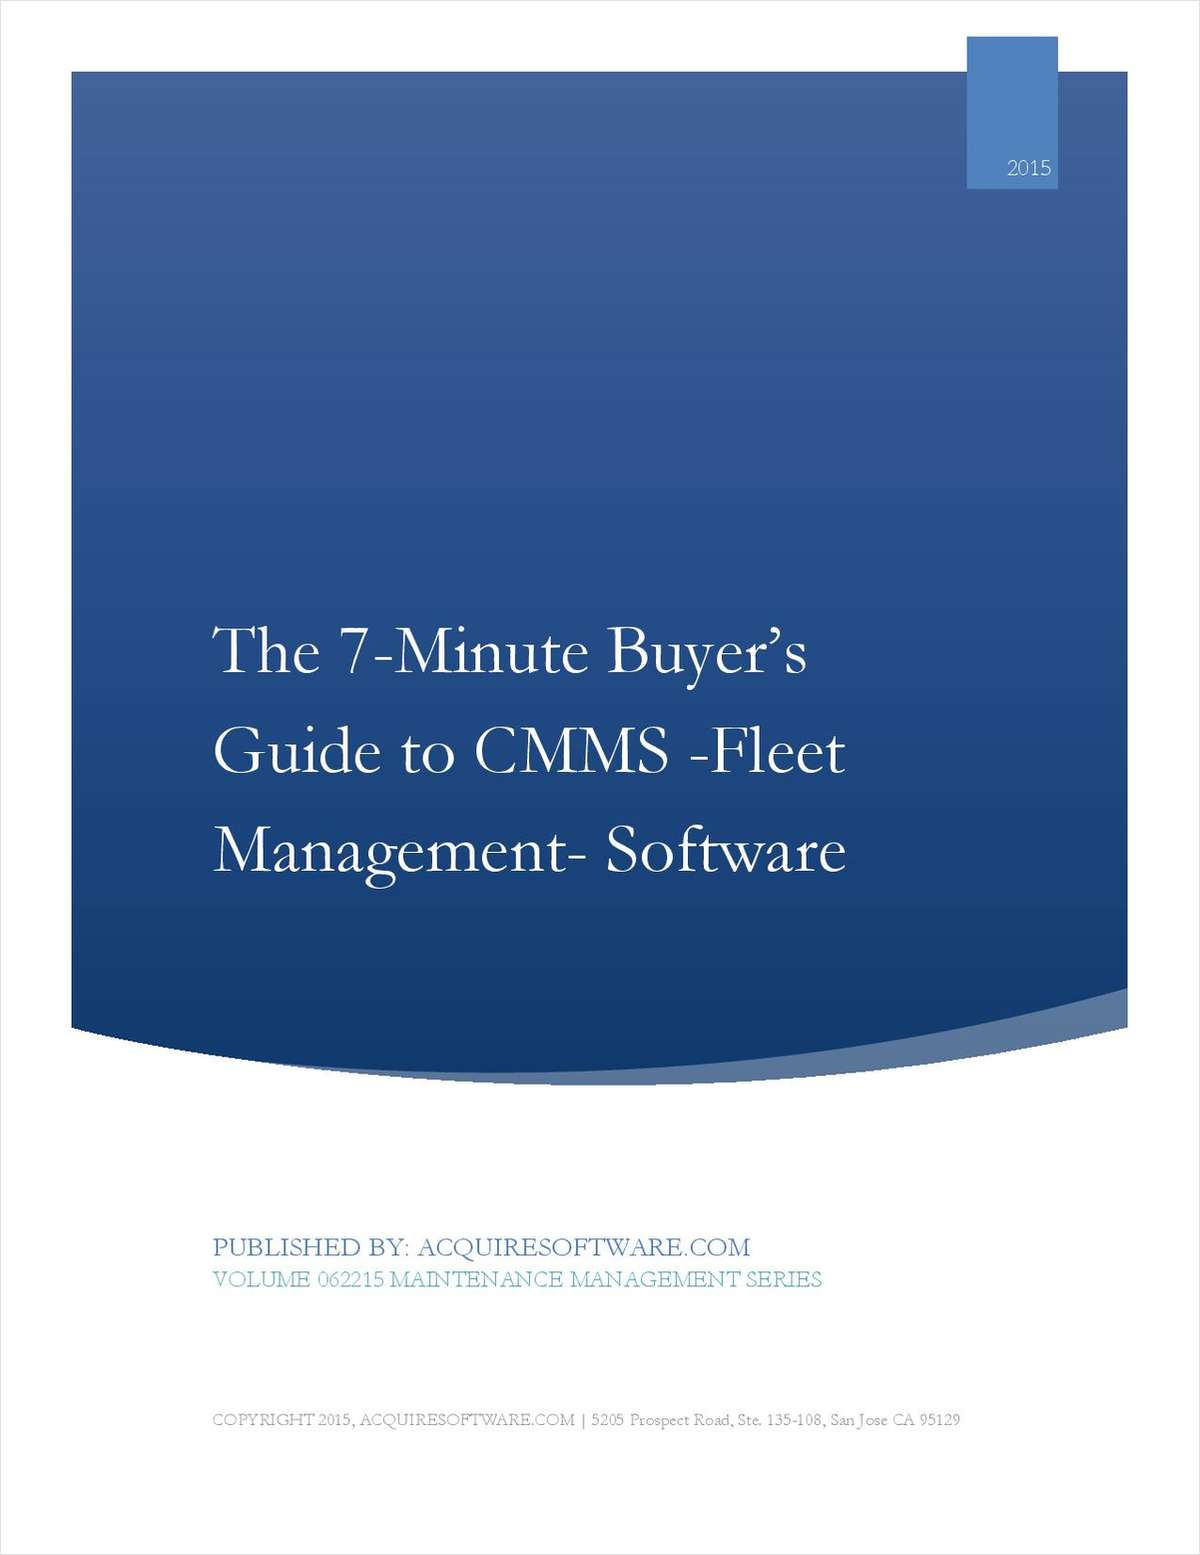 The 7-Minute Buyer's Guide to Fleet Management CMMS Solutions